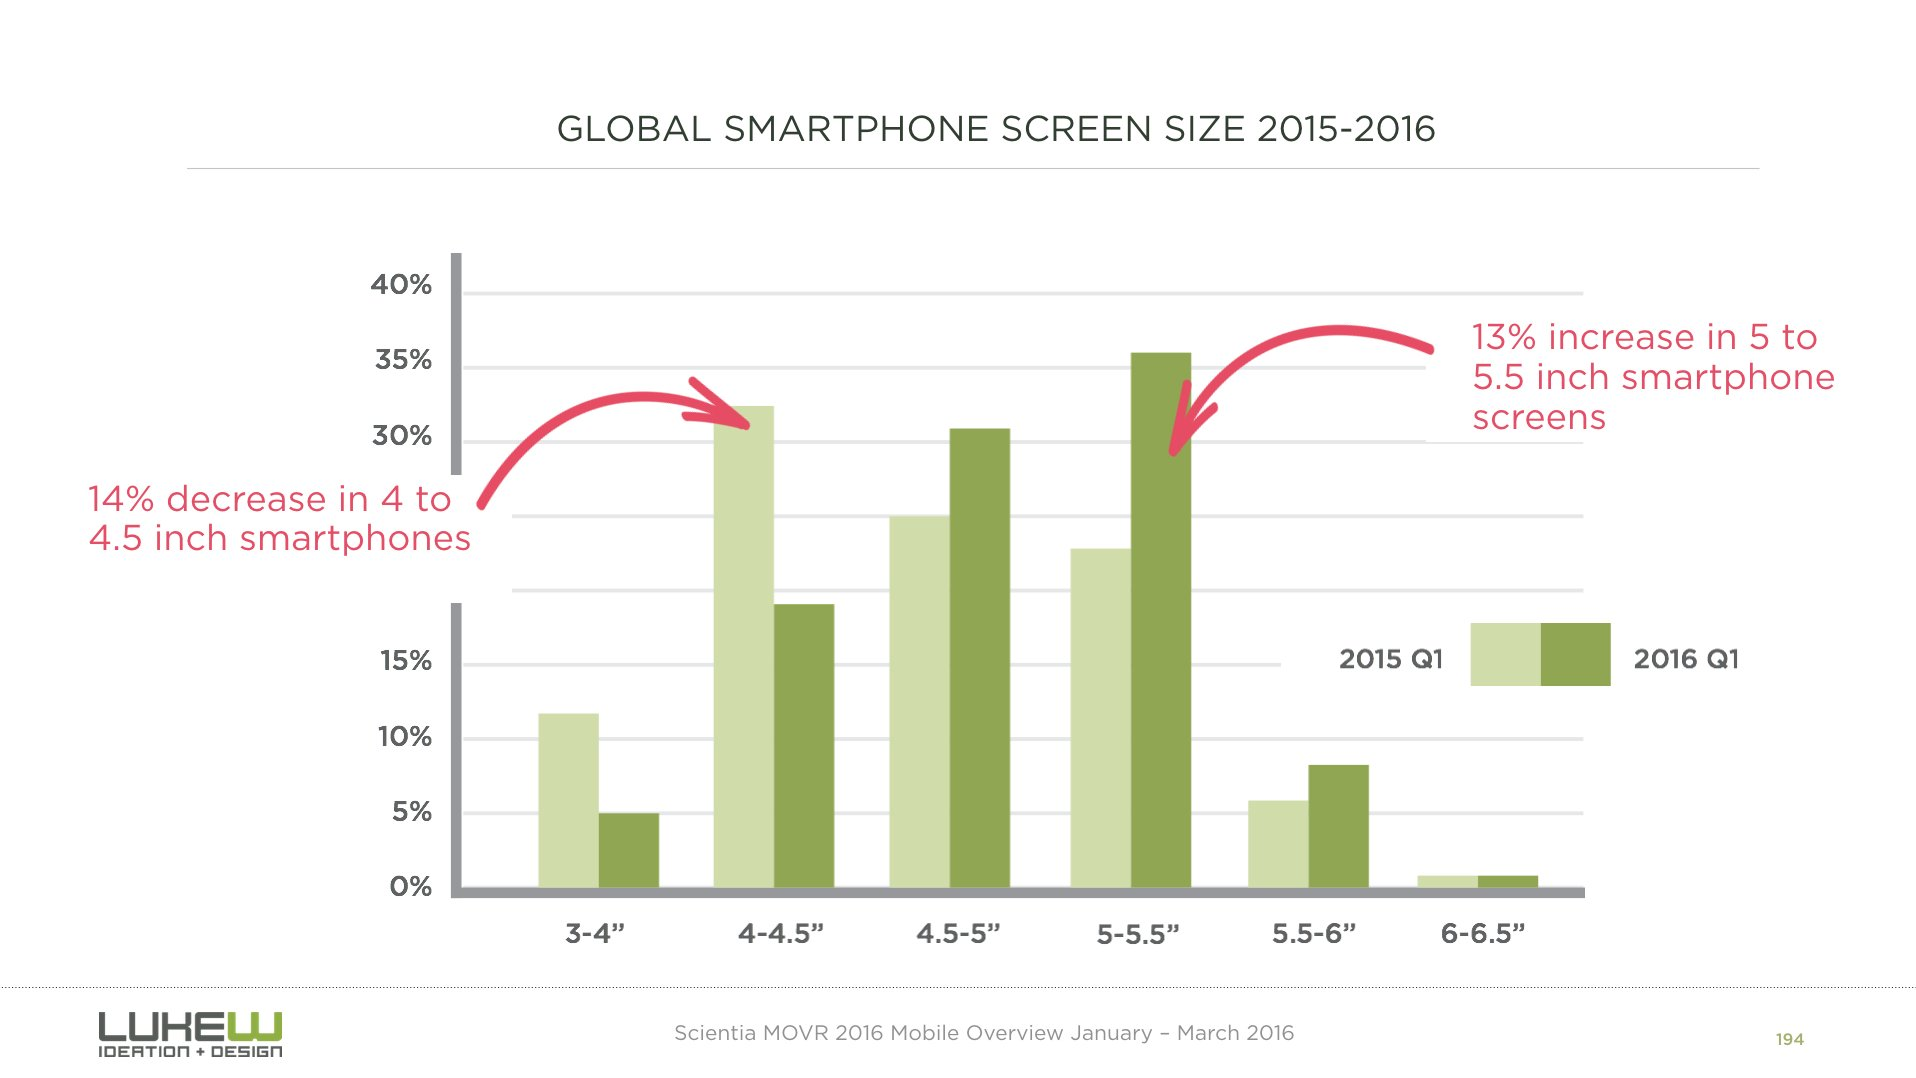 one year in smartphone screens… https://t.co/lU0yd33zMa